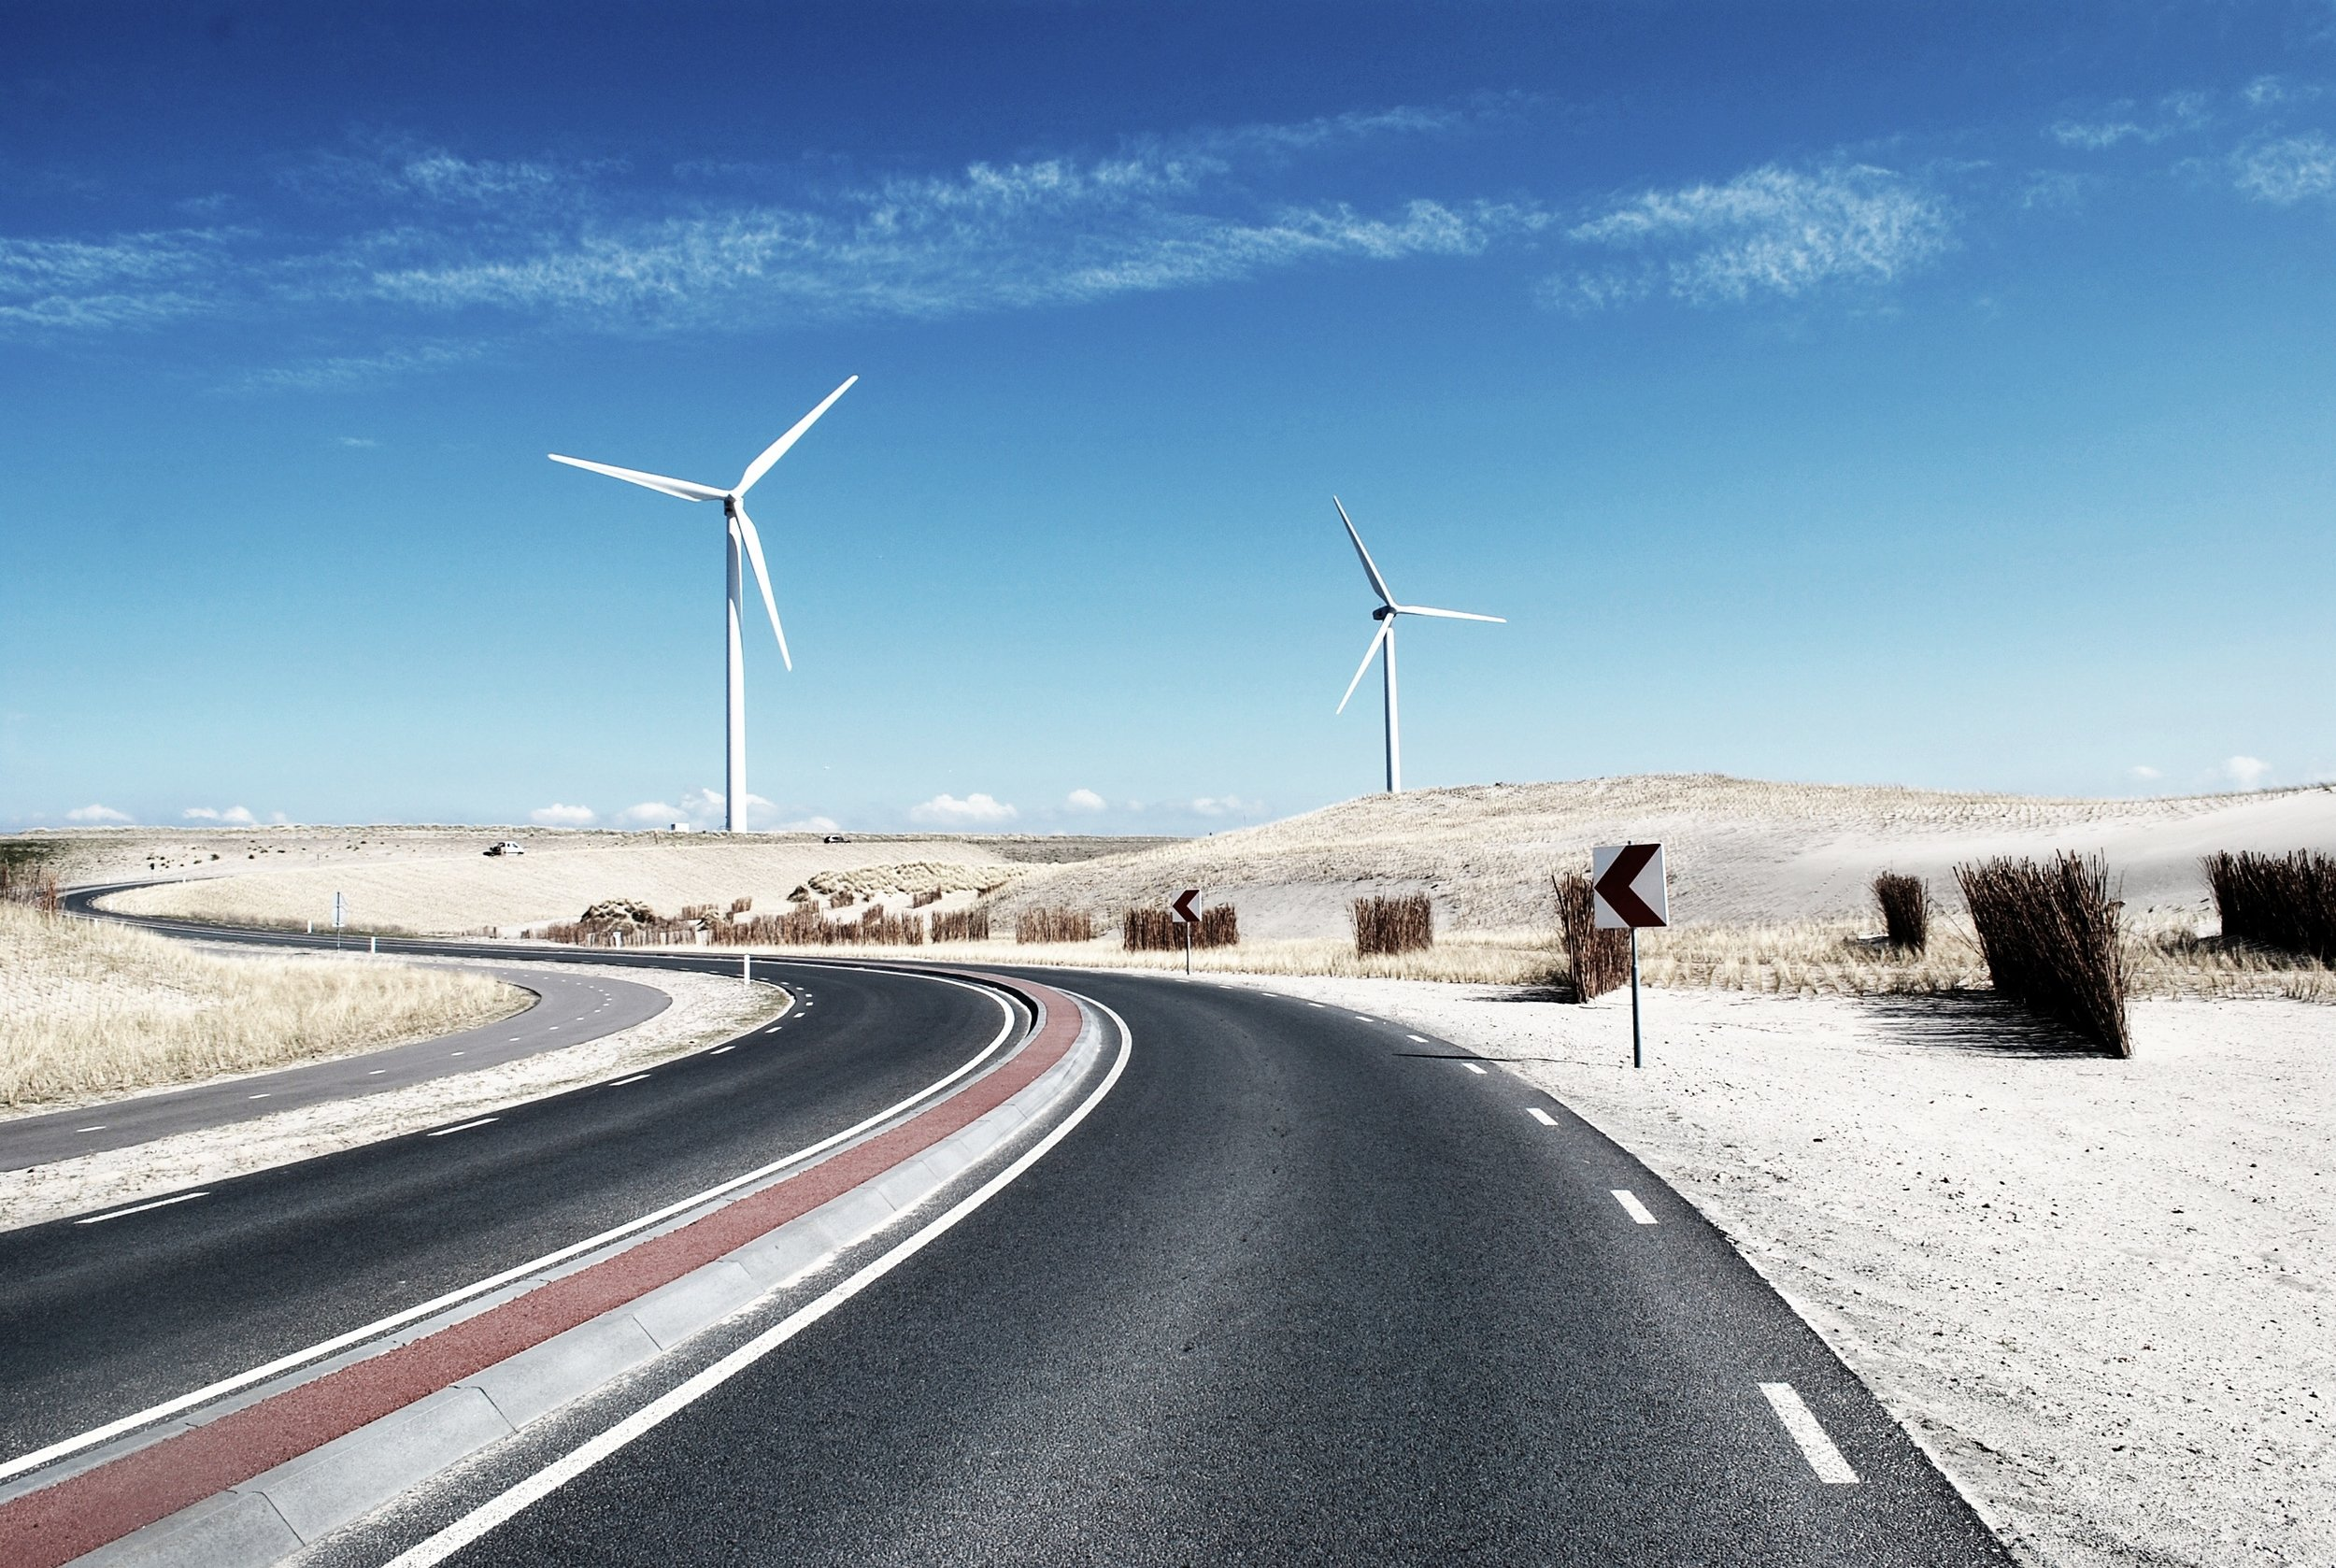 Wind Turbines & Road.jpg